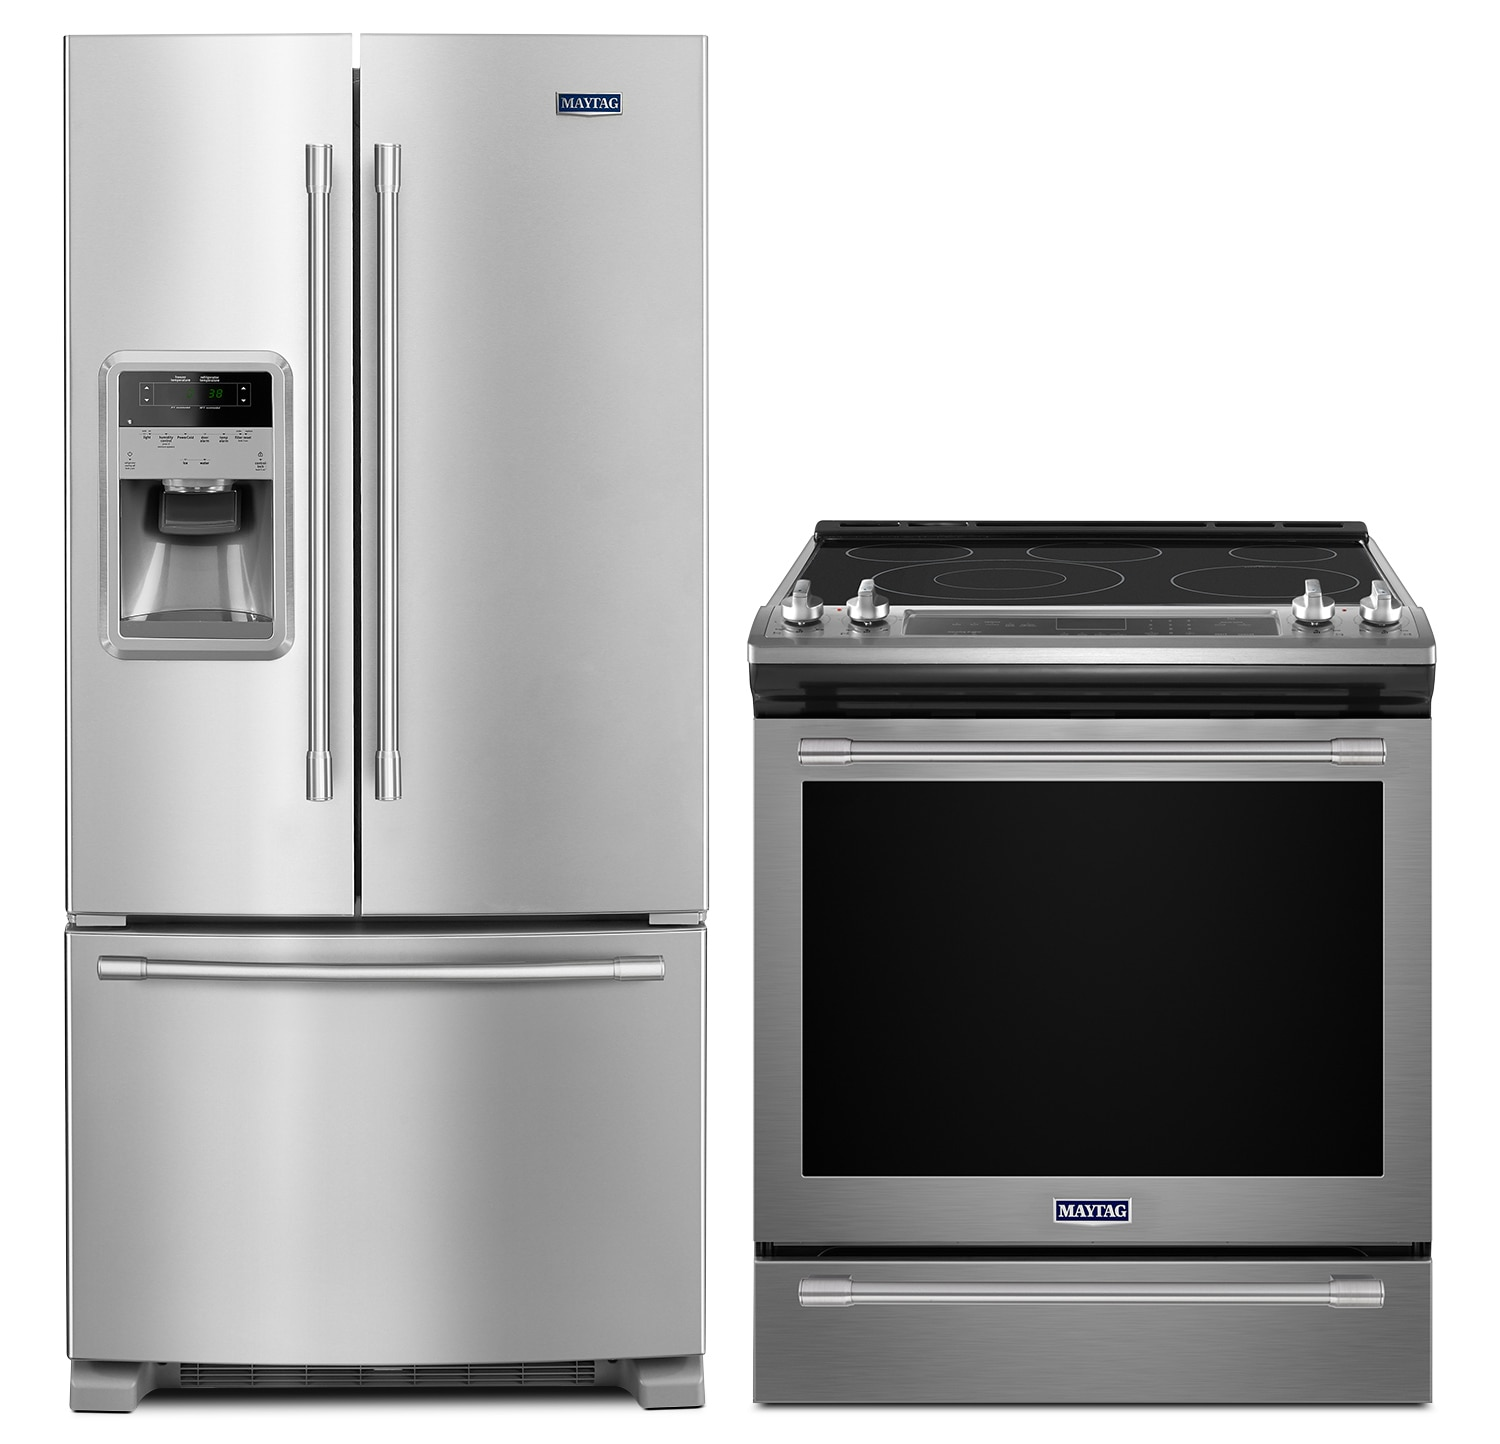 Refrigerators and Freezers - Maytag 22 Cu. Ft. French-Door Refrigerator and 6.4 Cu. Ft. Slide-In Electric Range